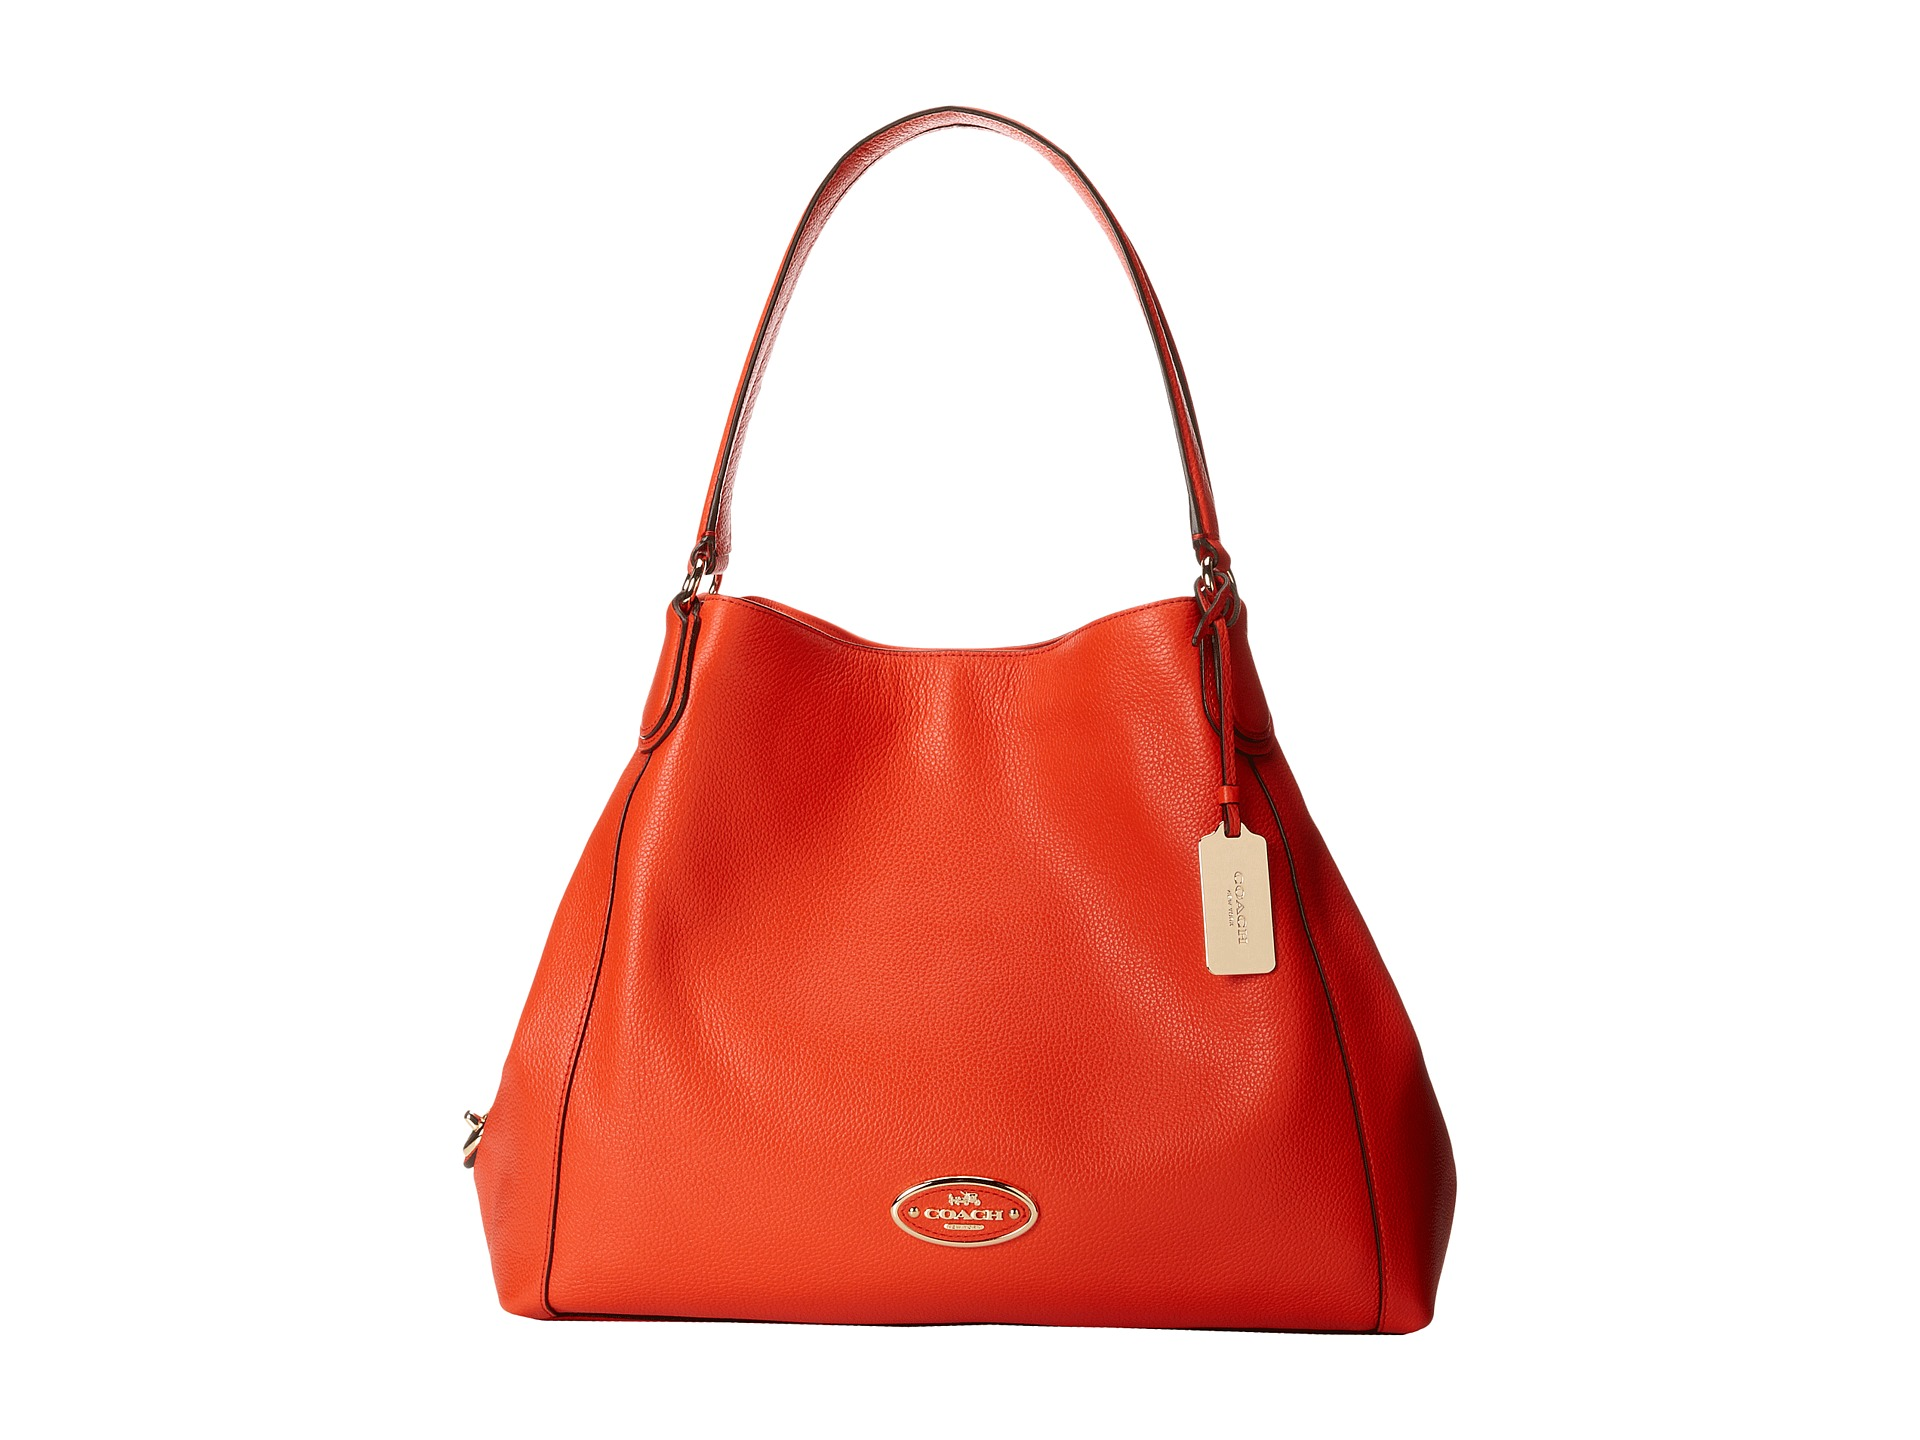 COACH Refined Pebbled Leather Edie Shoulder Bag Zappos